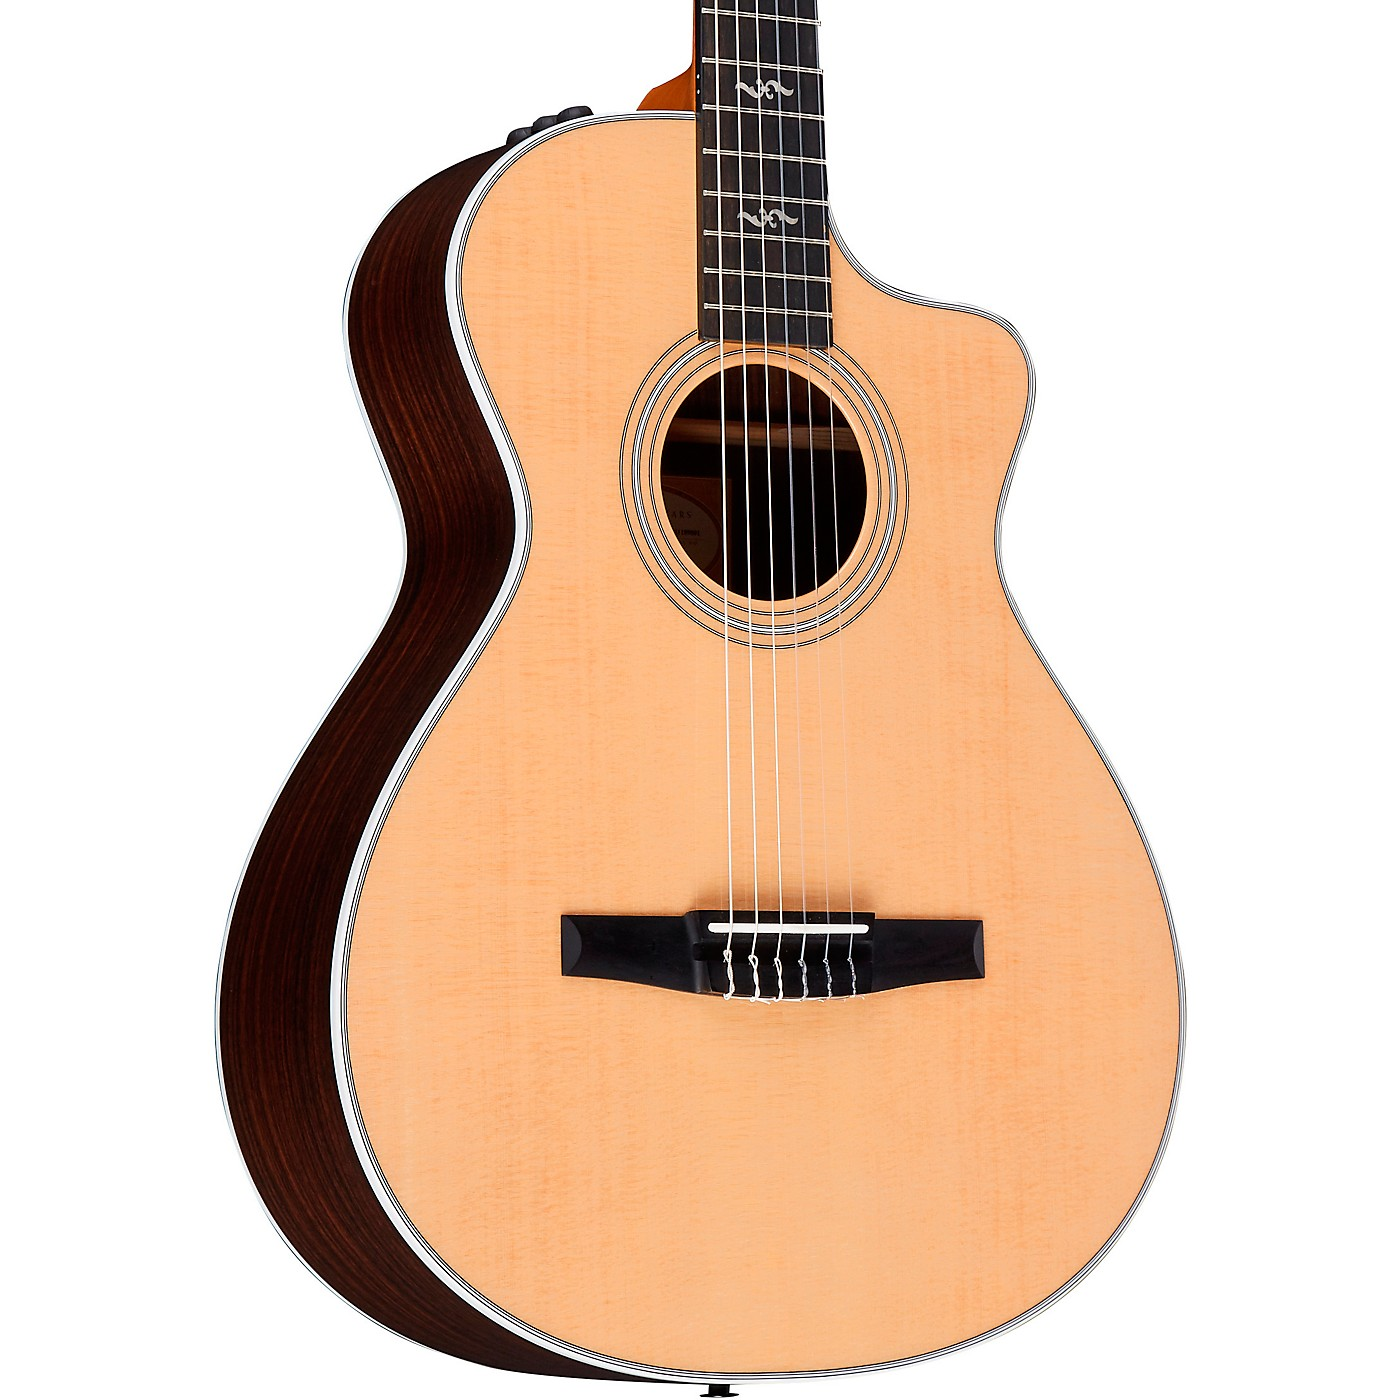 Taylor 412ce-N Rosewood Grand Concert Nylon String Acoustic-Electric Guitar thumbnail